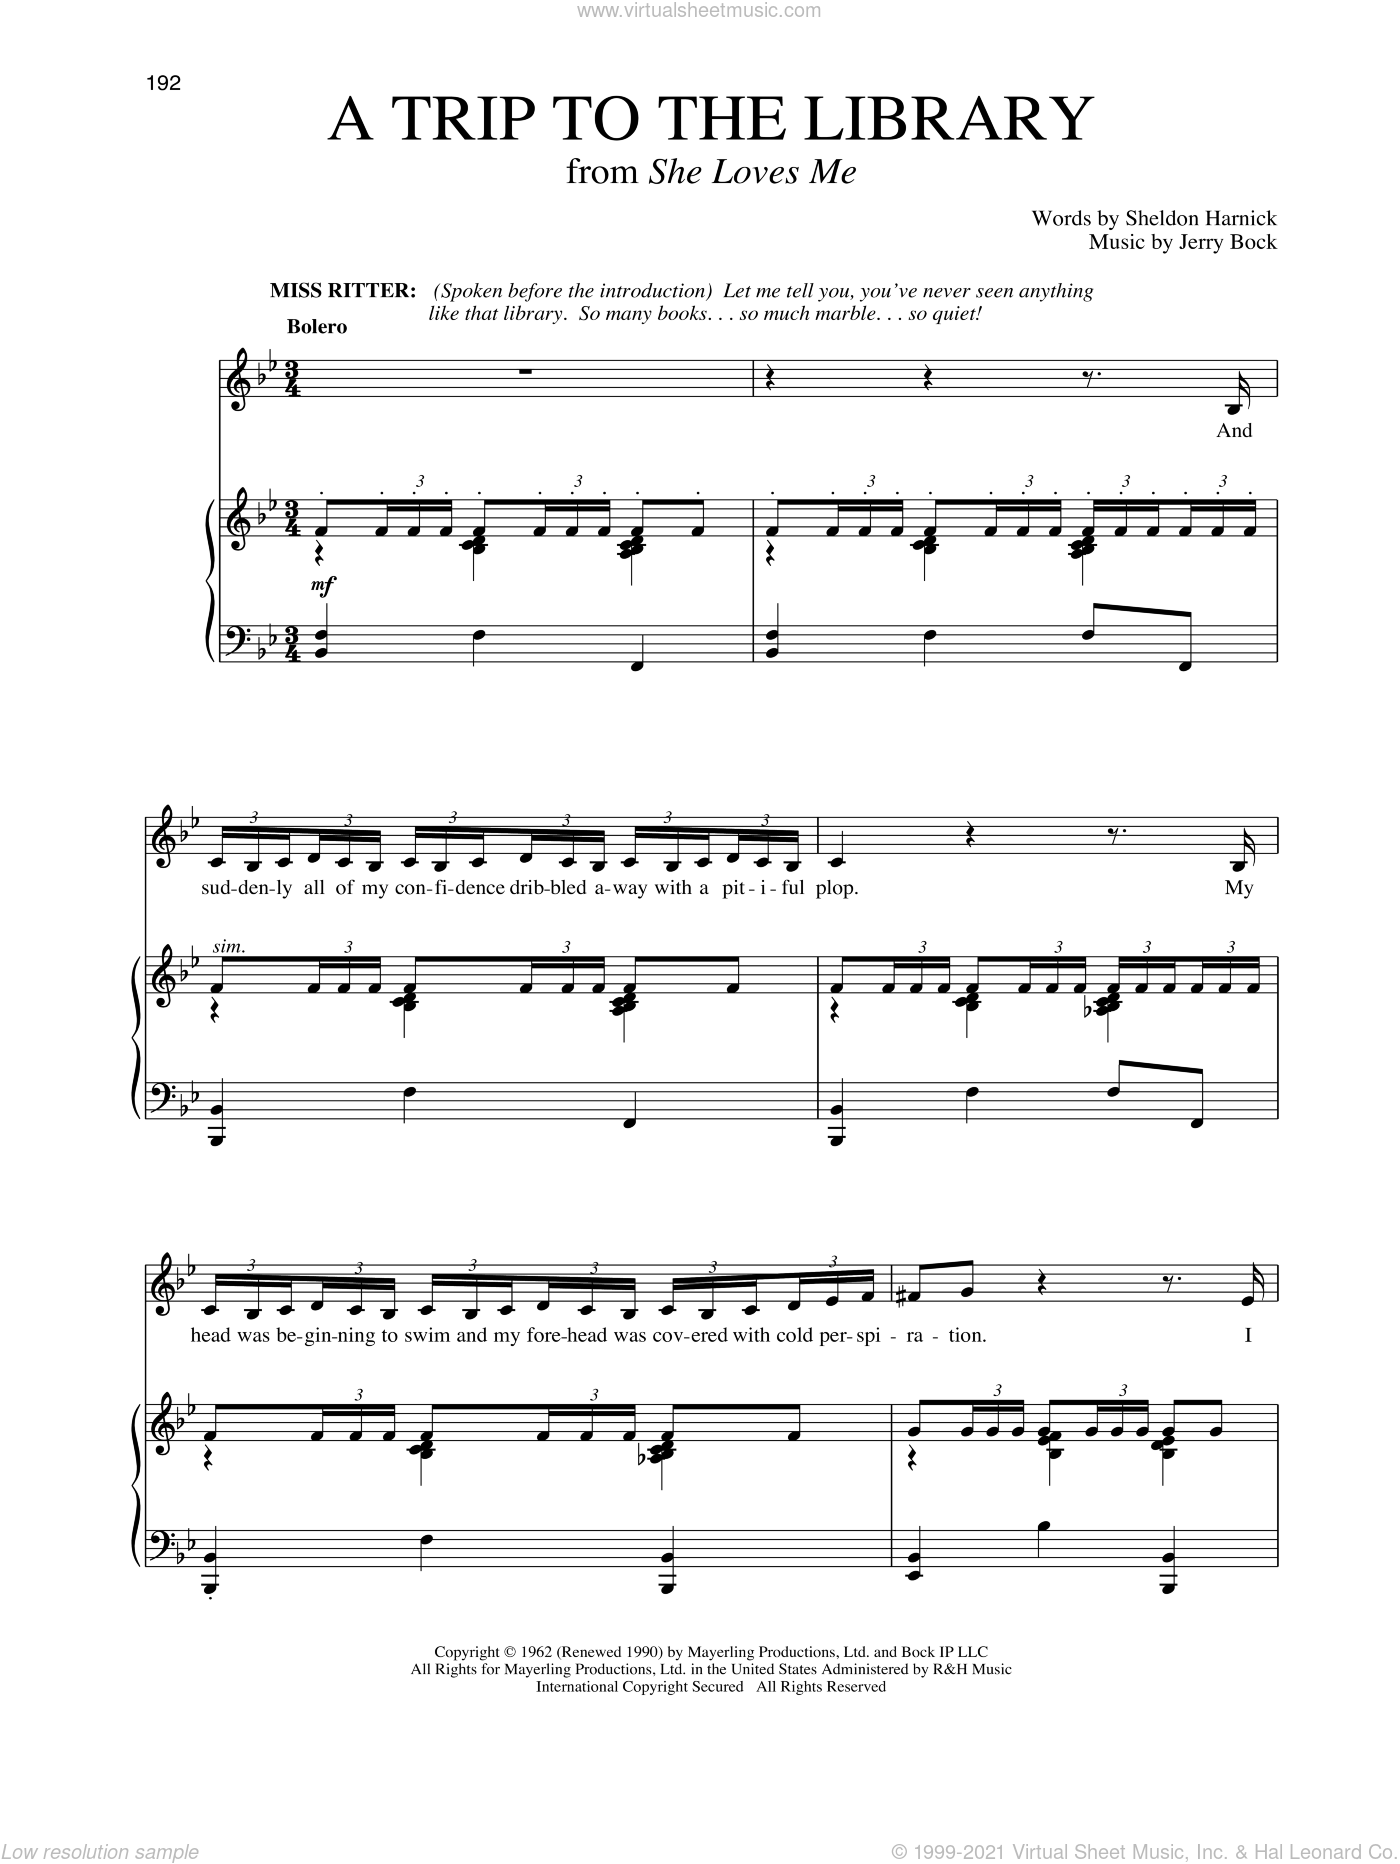 A Trip To The Library (from She Loves Me) sheet music for voice and piano by Jerry Bock, Richard Walters, Sheldon Harnick and Sheldon Harnick & Jerry Bock, intermediate skill level